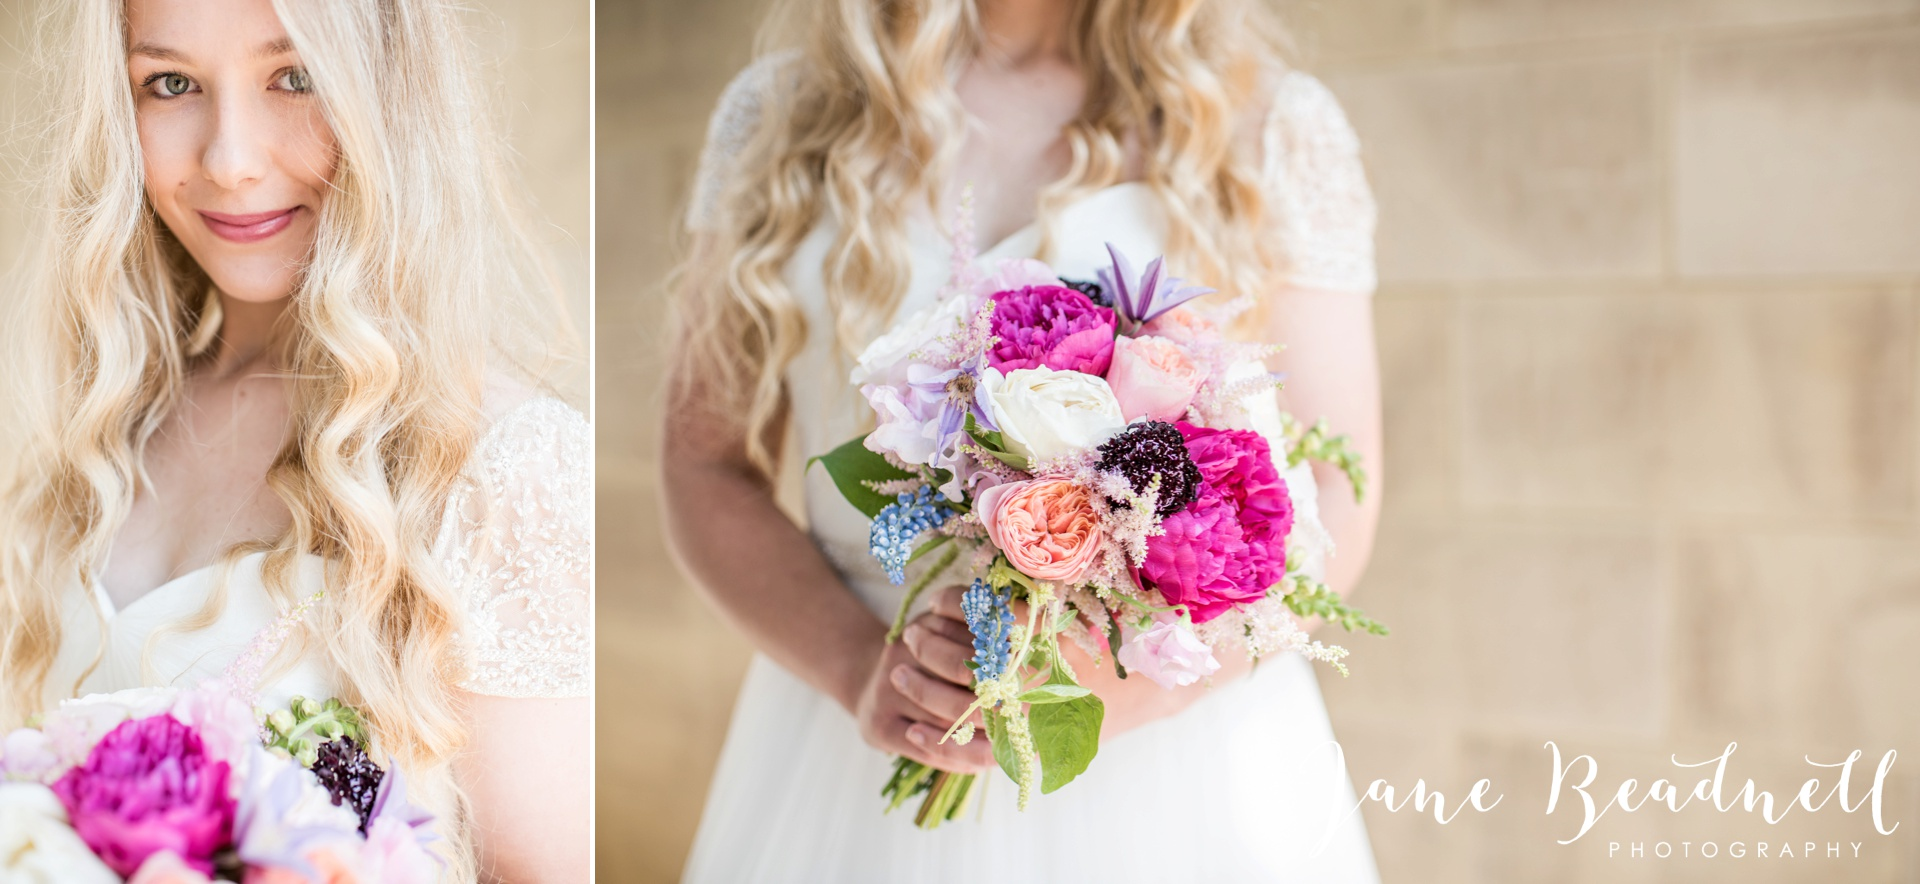 Fine art wedding photography by Jane Beadnell Photography Leafy Couture wedding flowers_0014